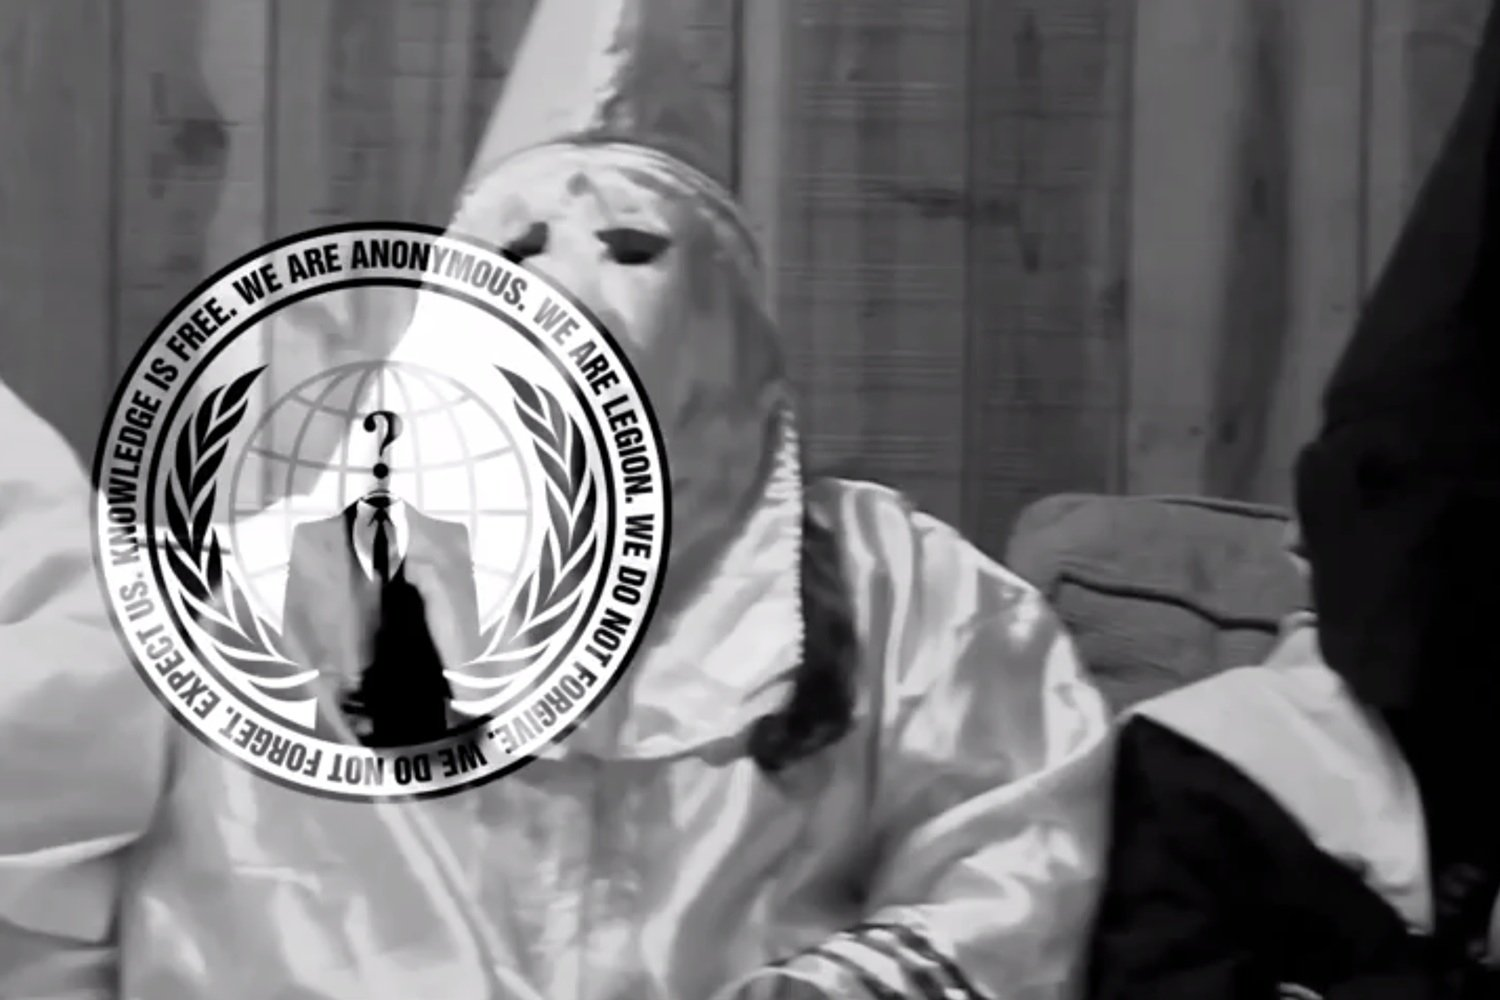 The KKK Just Got Hilariously Hijacked By Anonymous